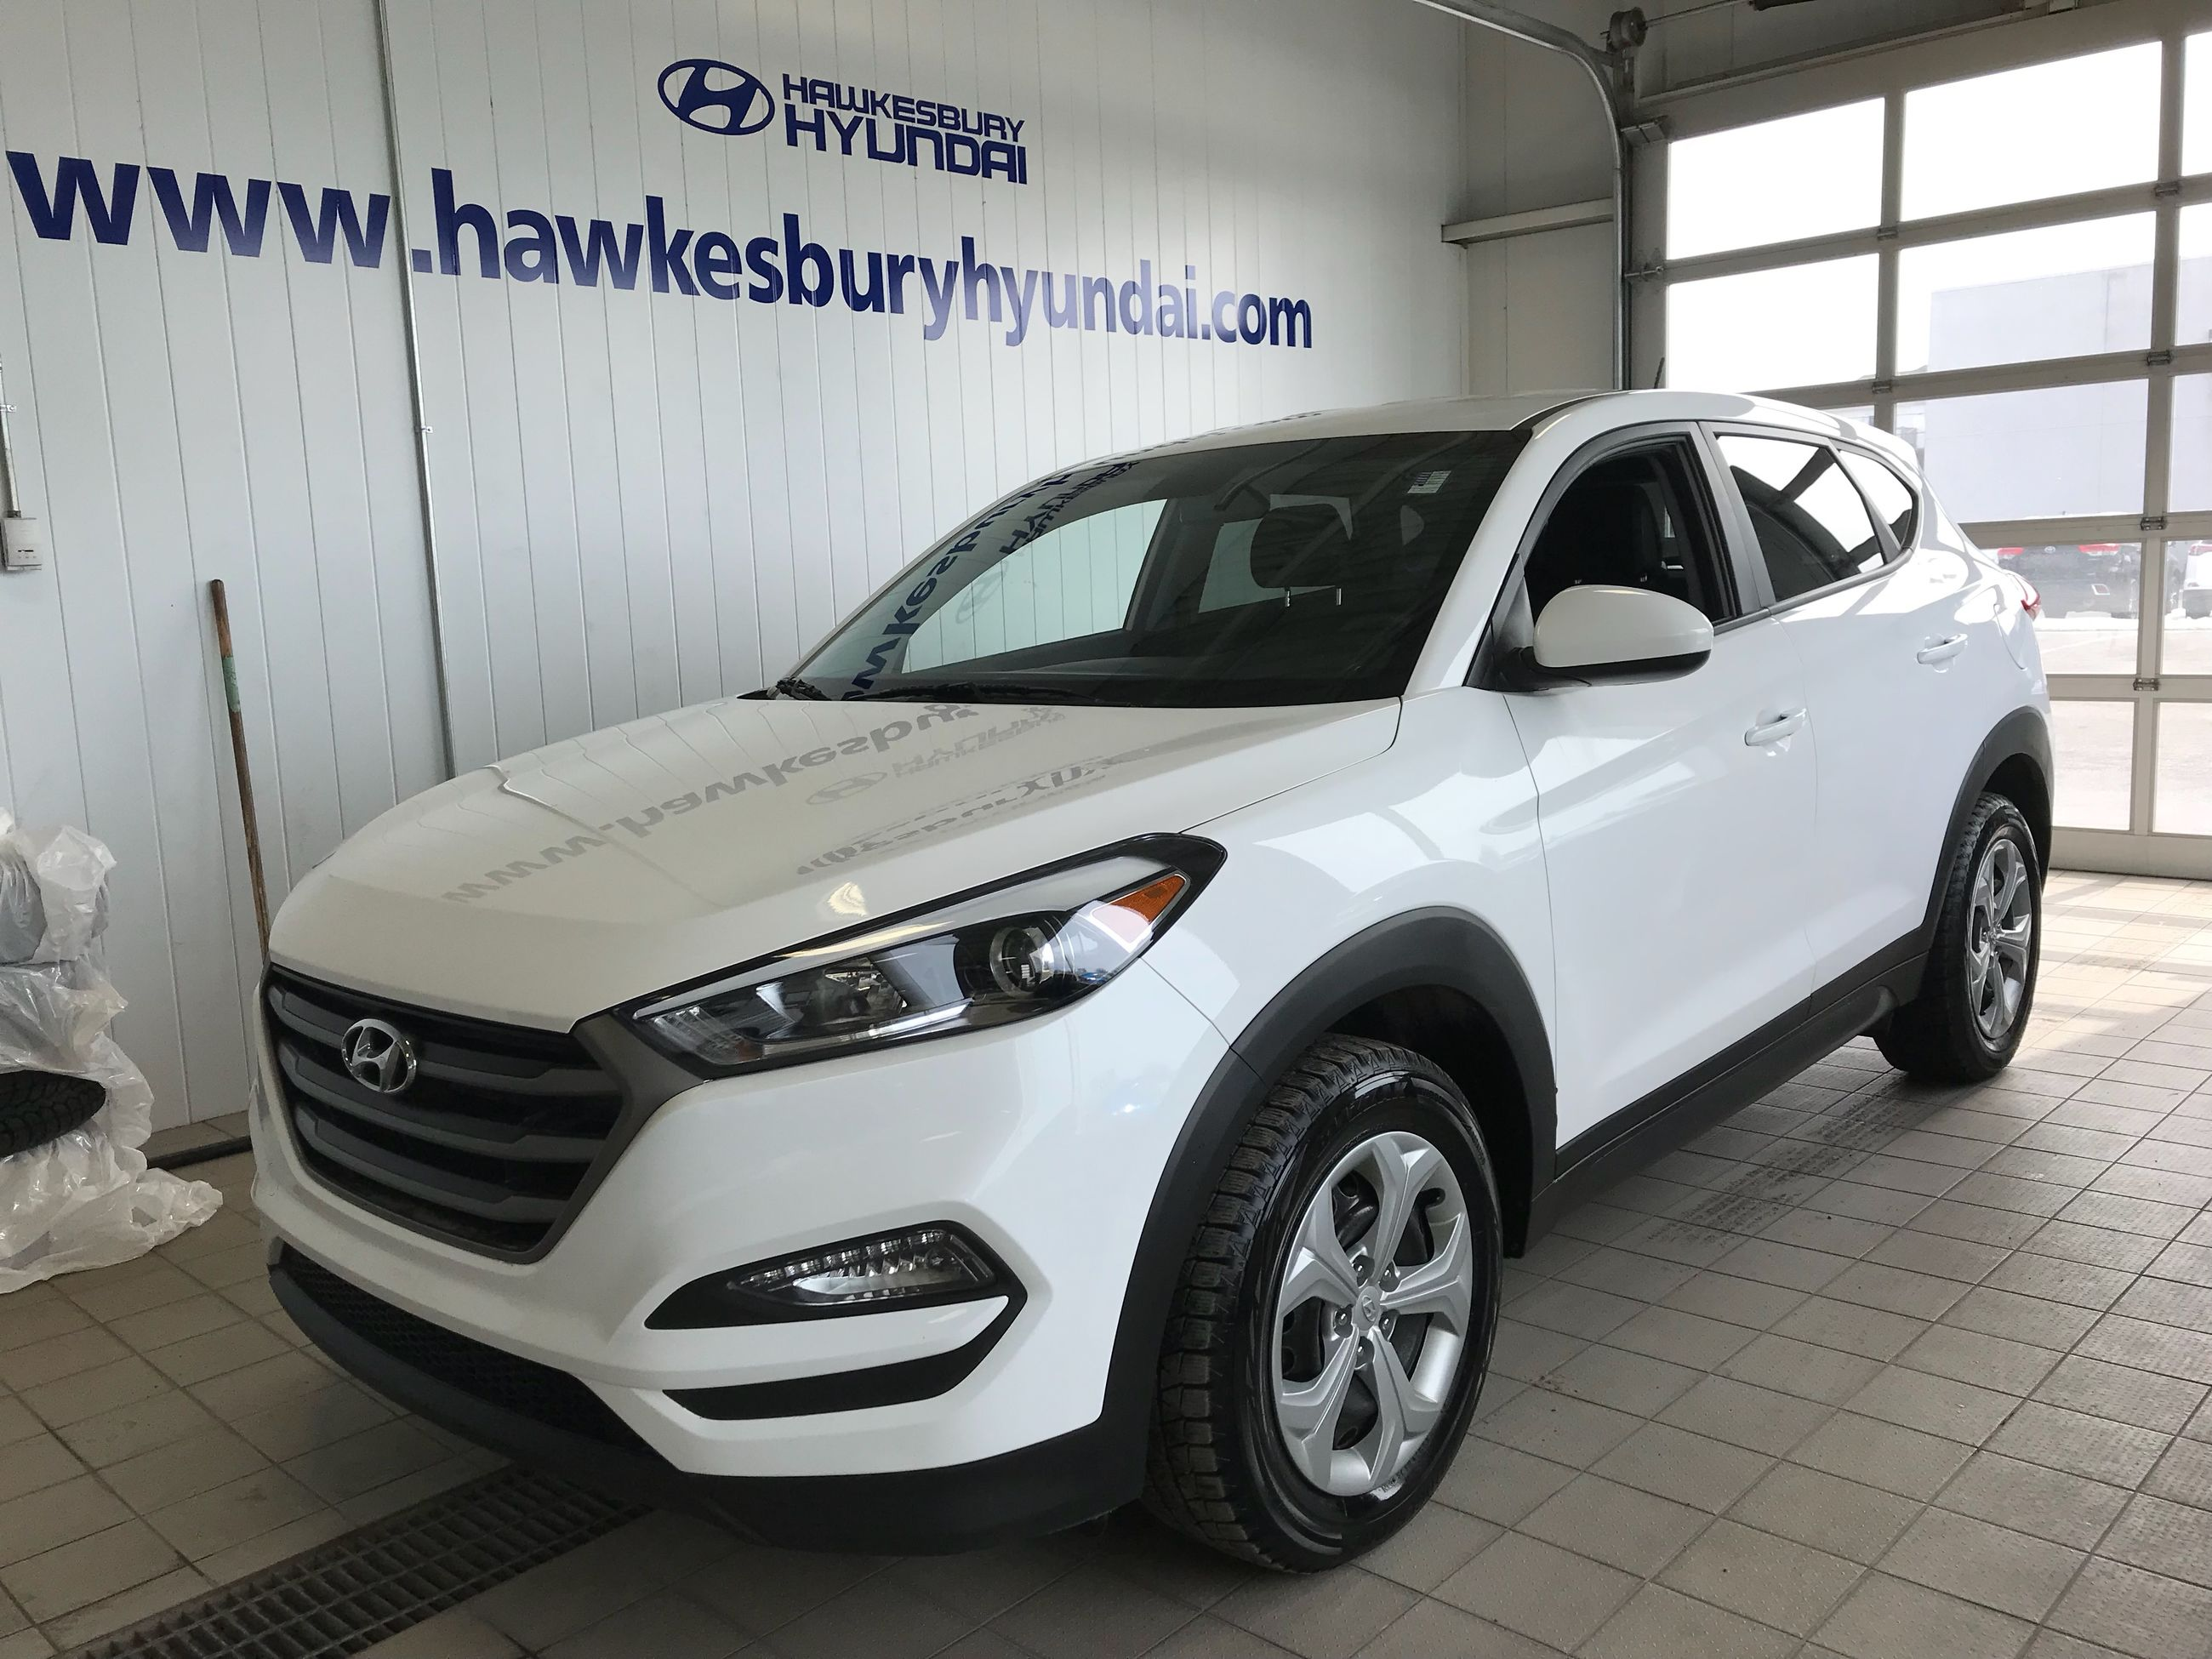 h tucson without hyundai a turbo and safer sharper now news